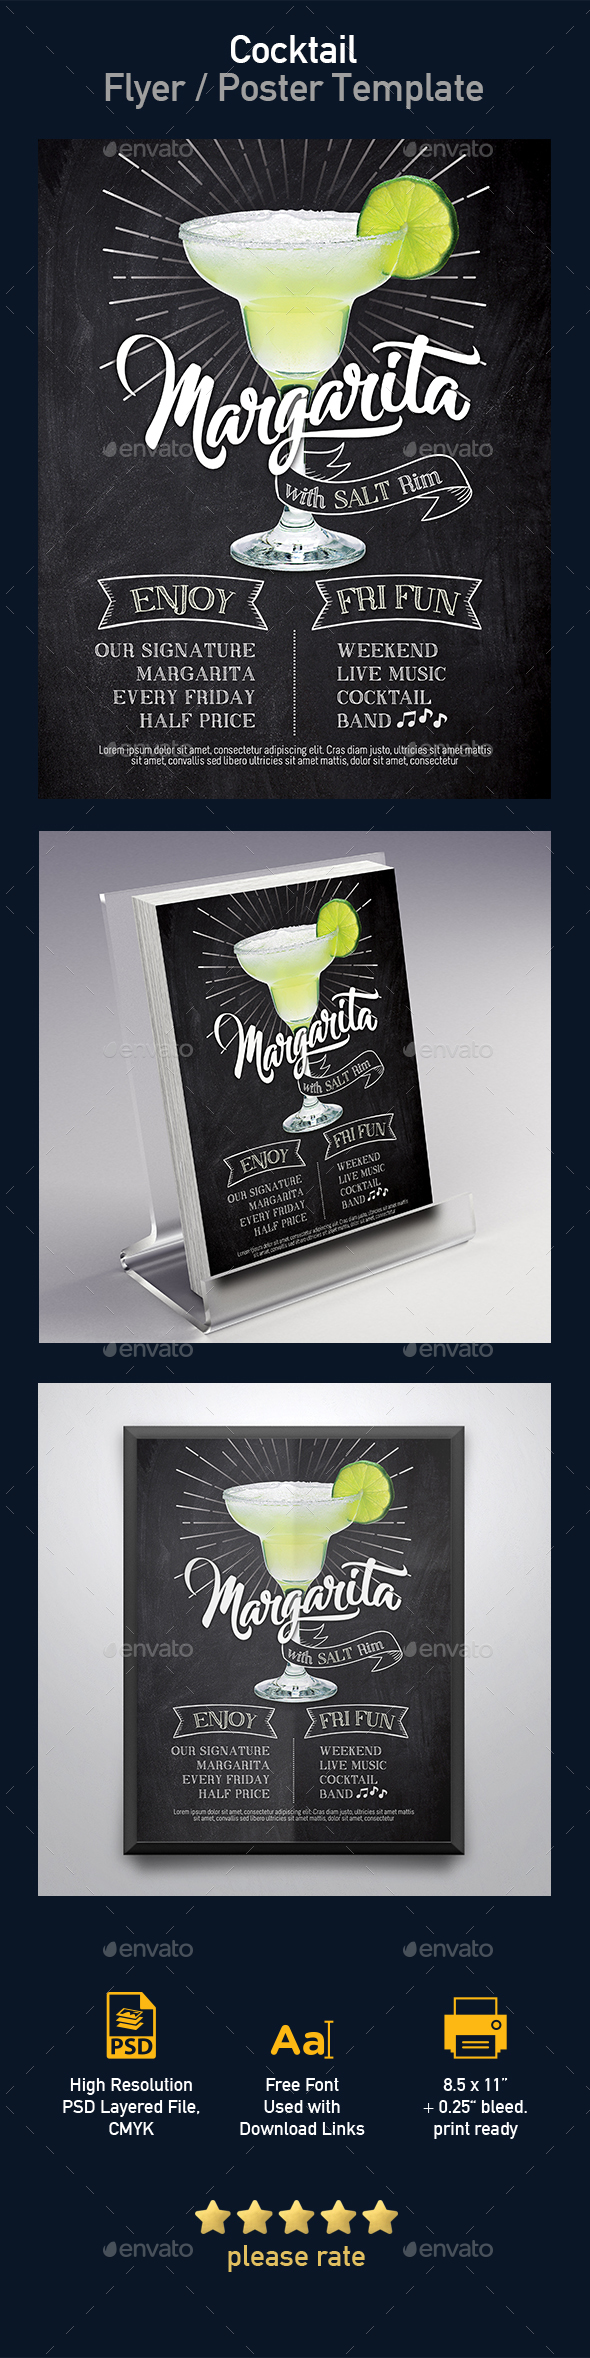 Margarita Cocktail Flyer Template - Events Flyers